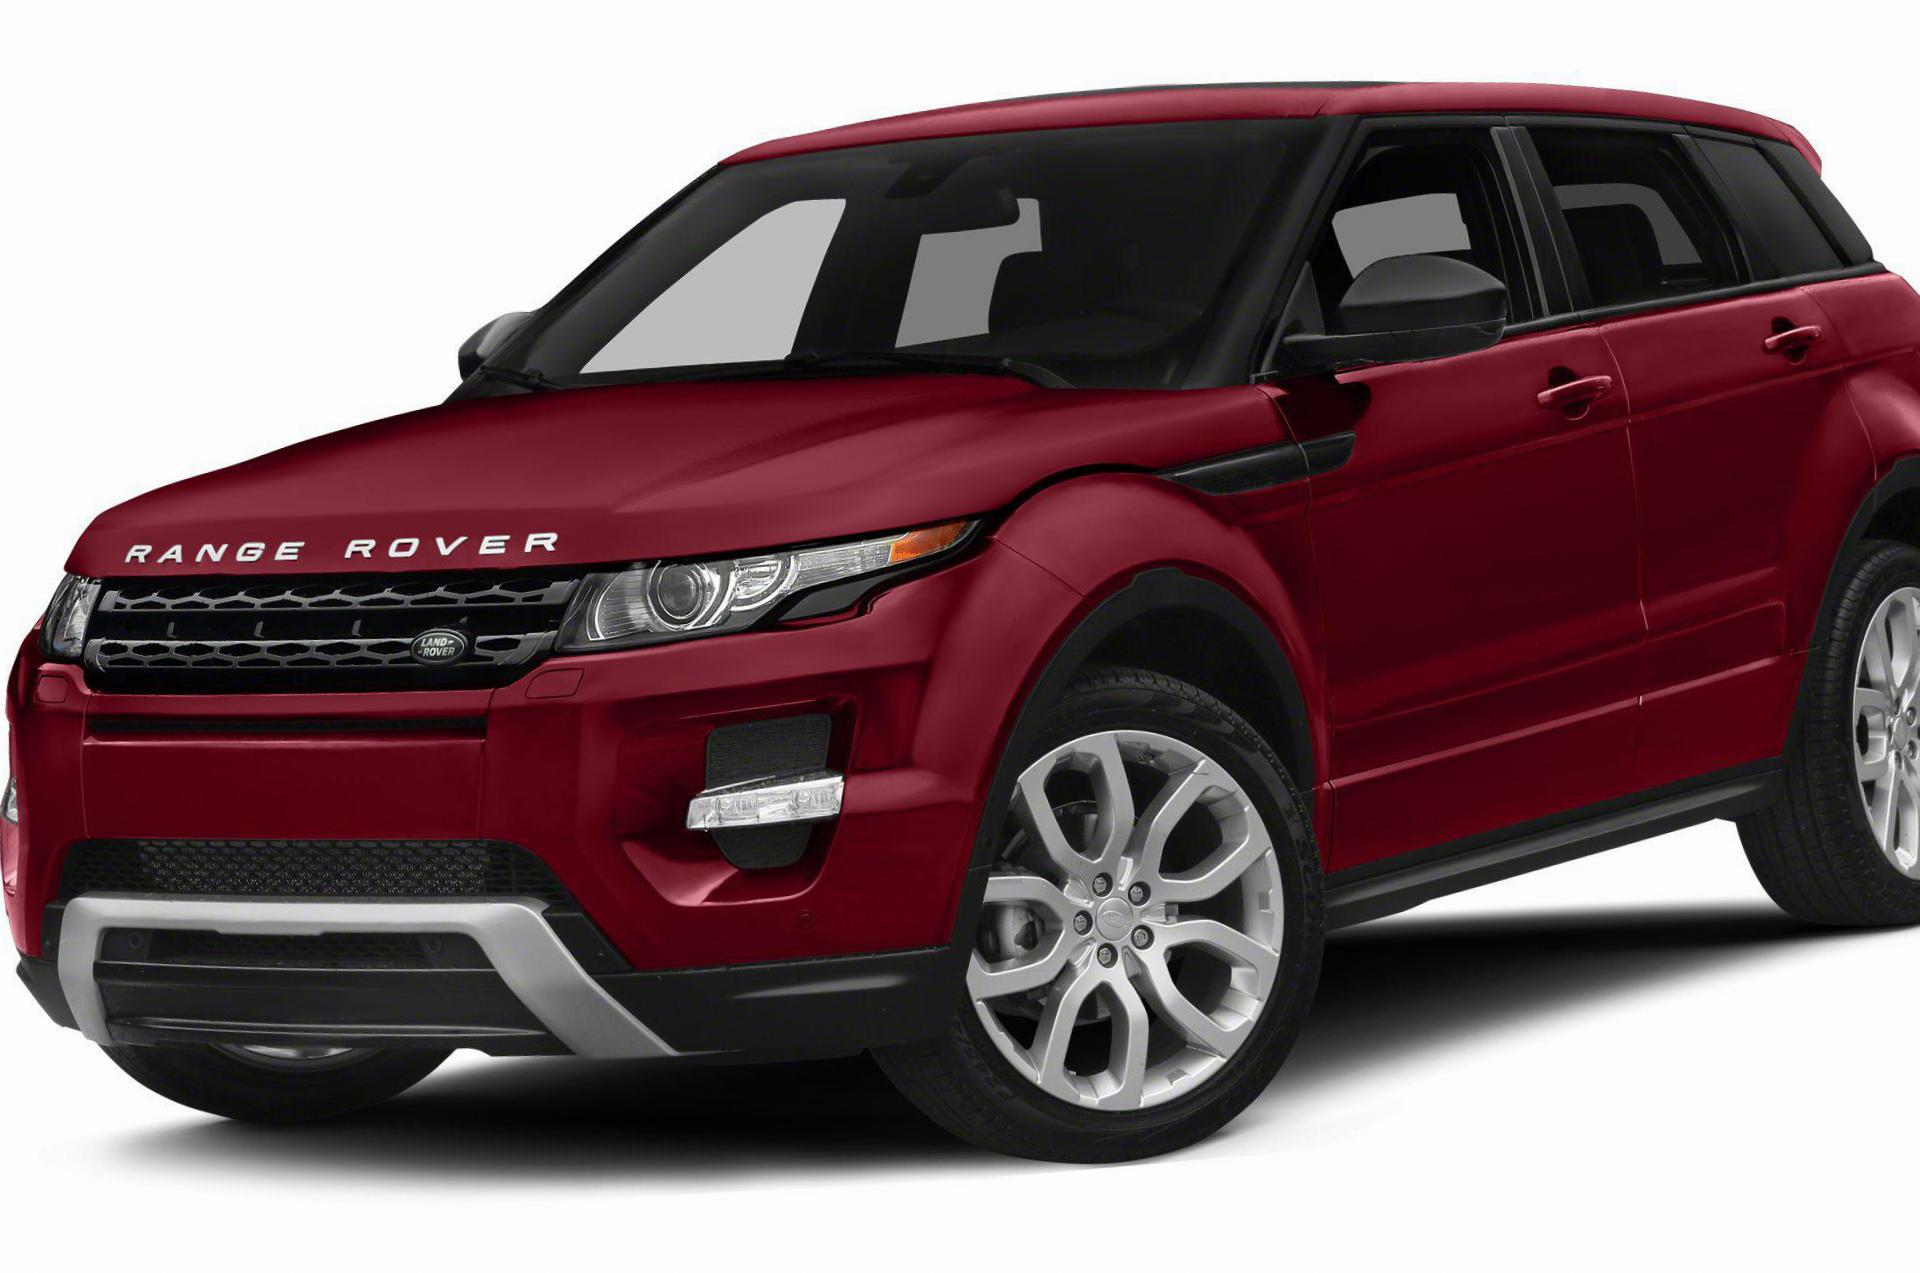 Land Rover Range Rover Evoque Specification sedan